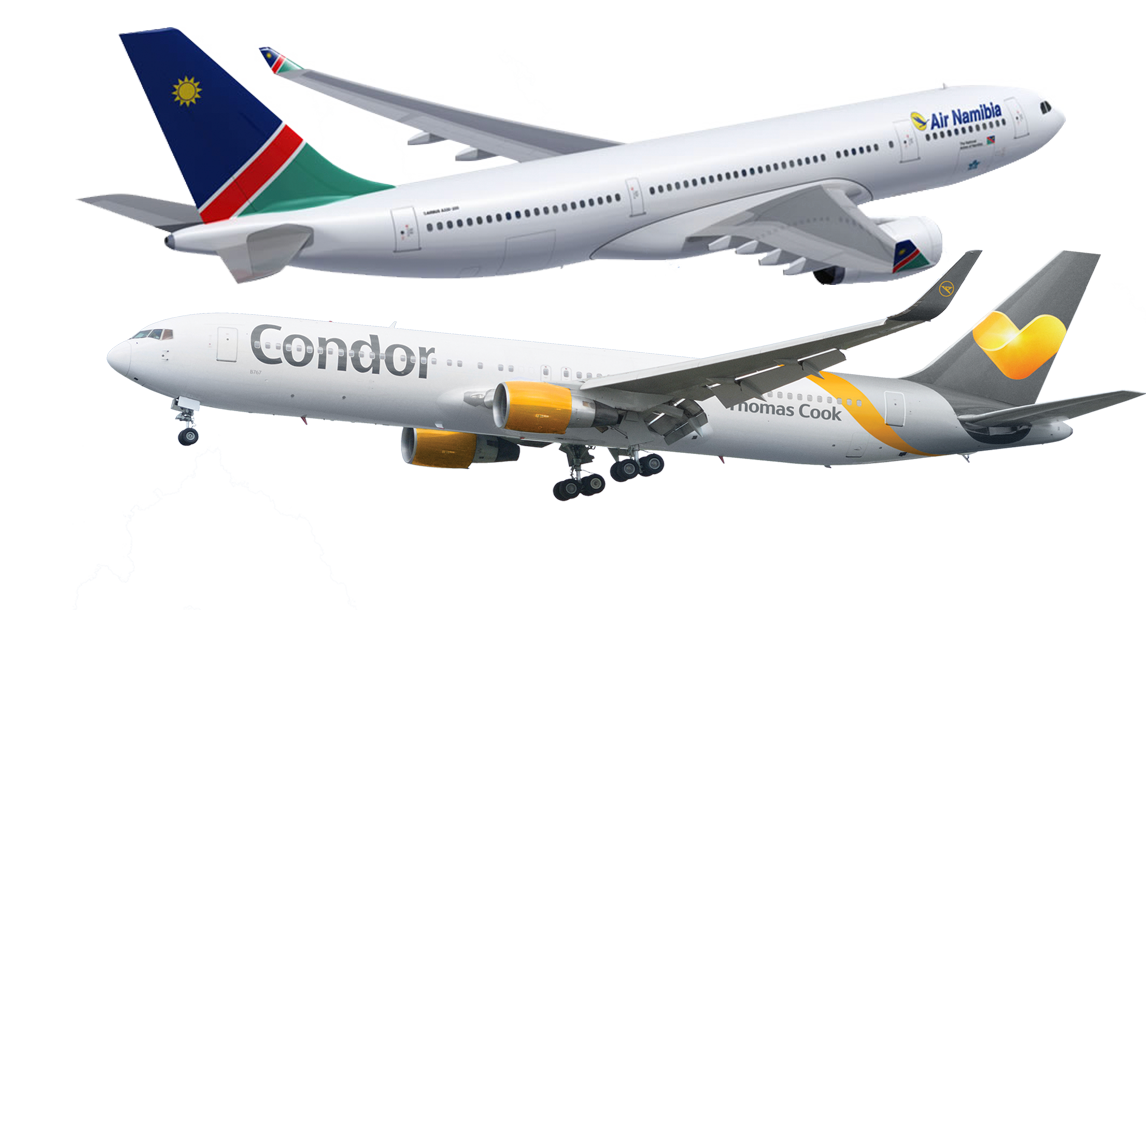 Air png image. Fly to namibia carrying